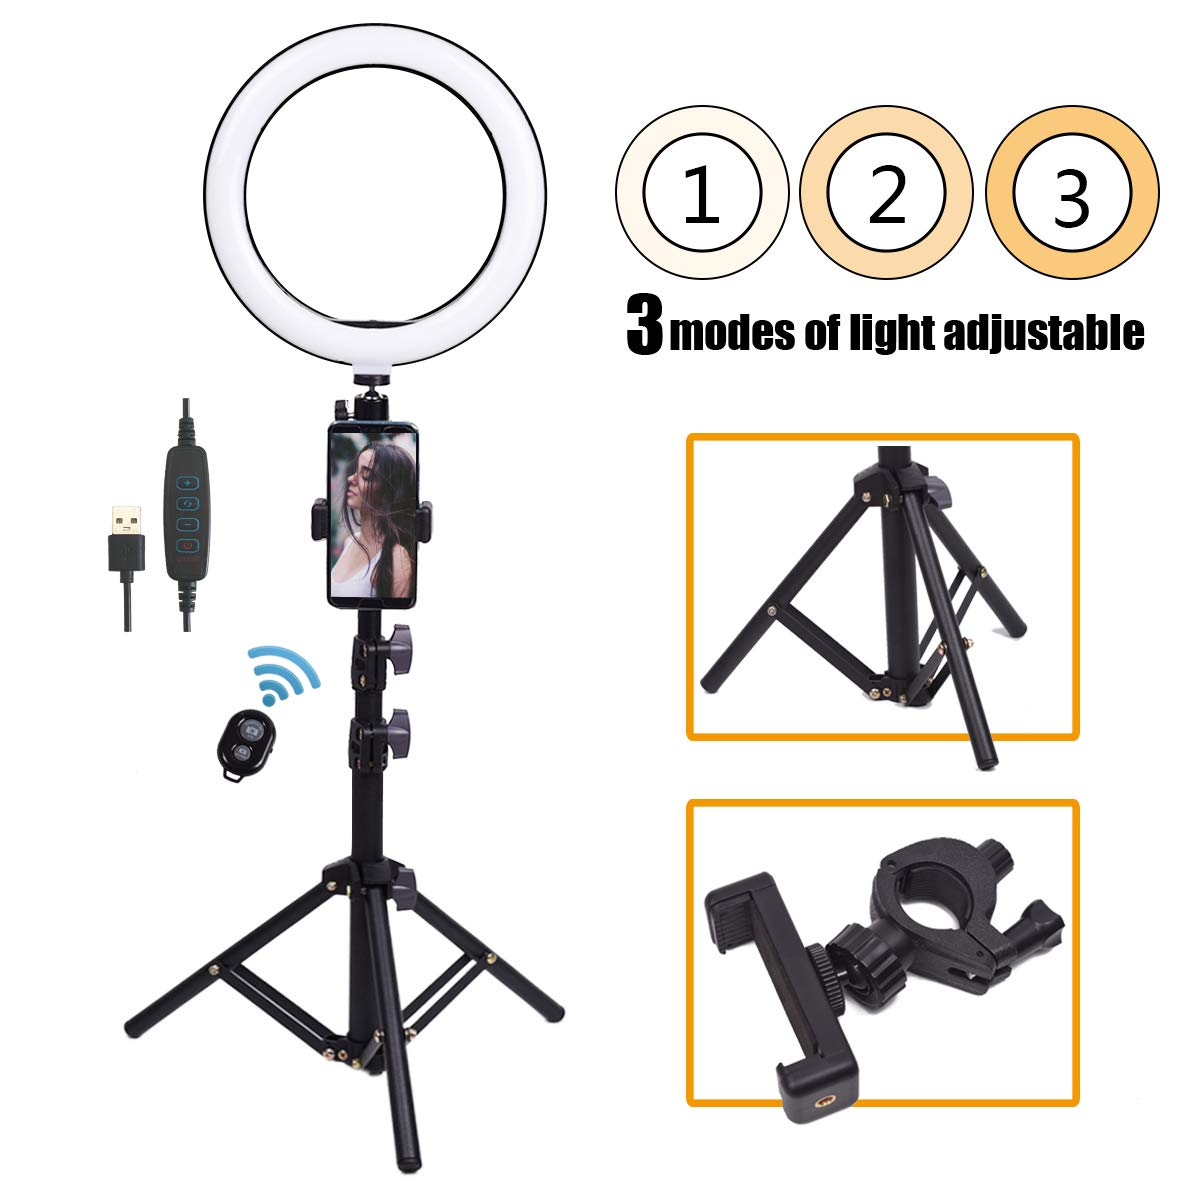 10'' Selfie Ring Light with Stand, Smilco Dimmable Led Ringlight Kits for YouTube Video/Live Makeup/Photography, Cell Phone Holder for iPhone, Samsung and More